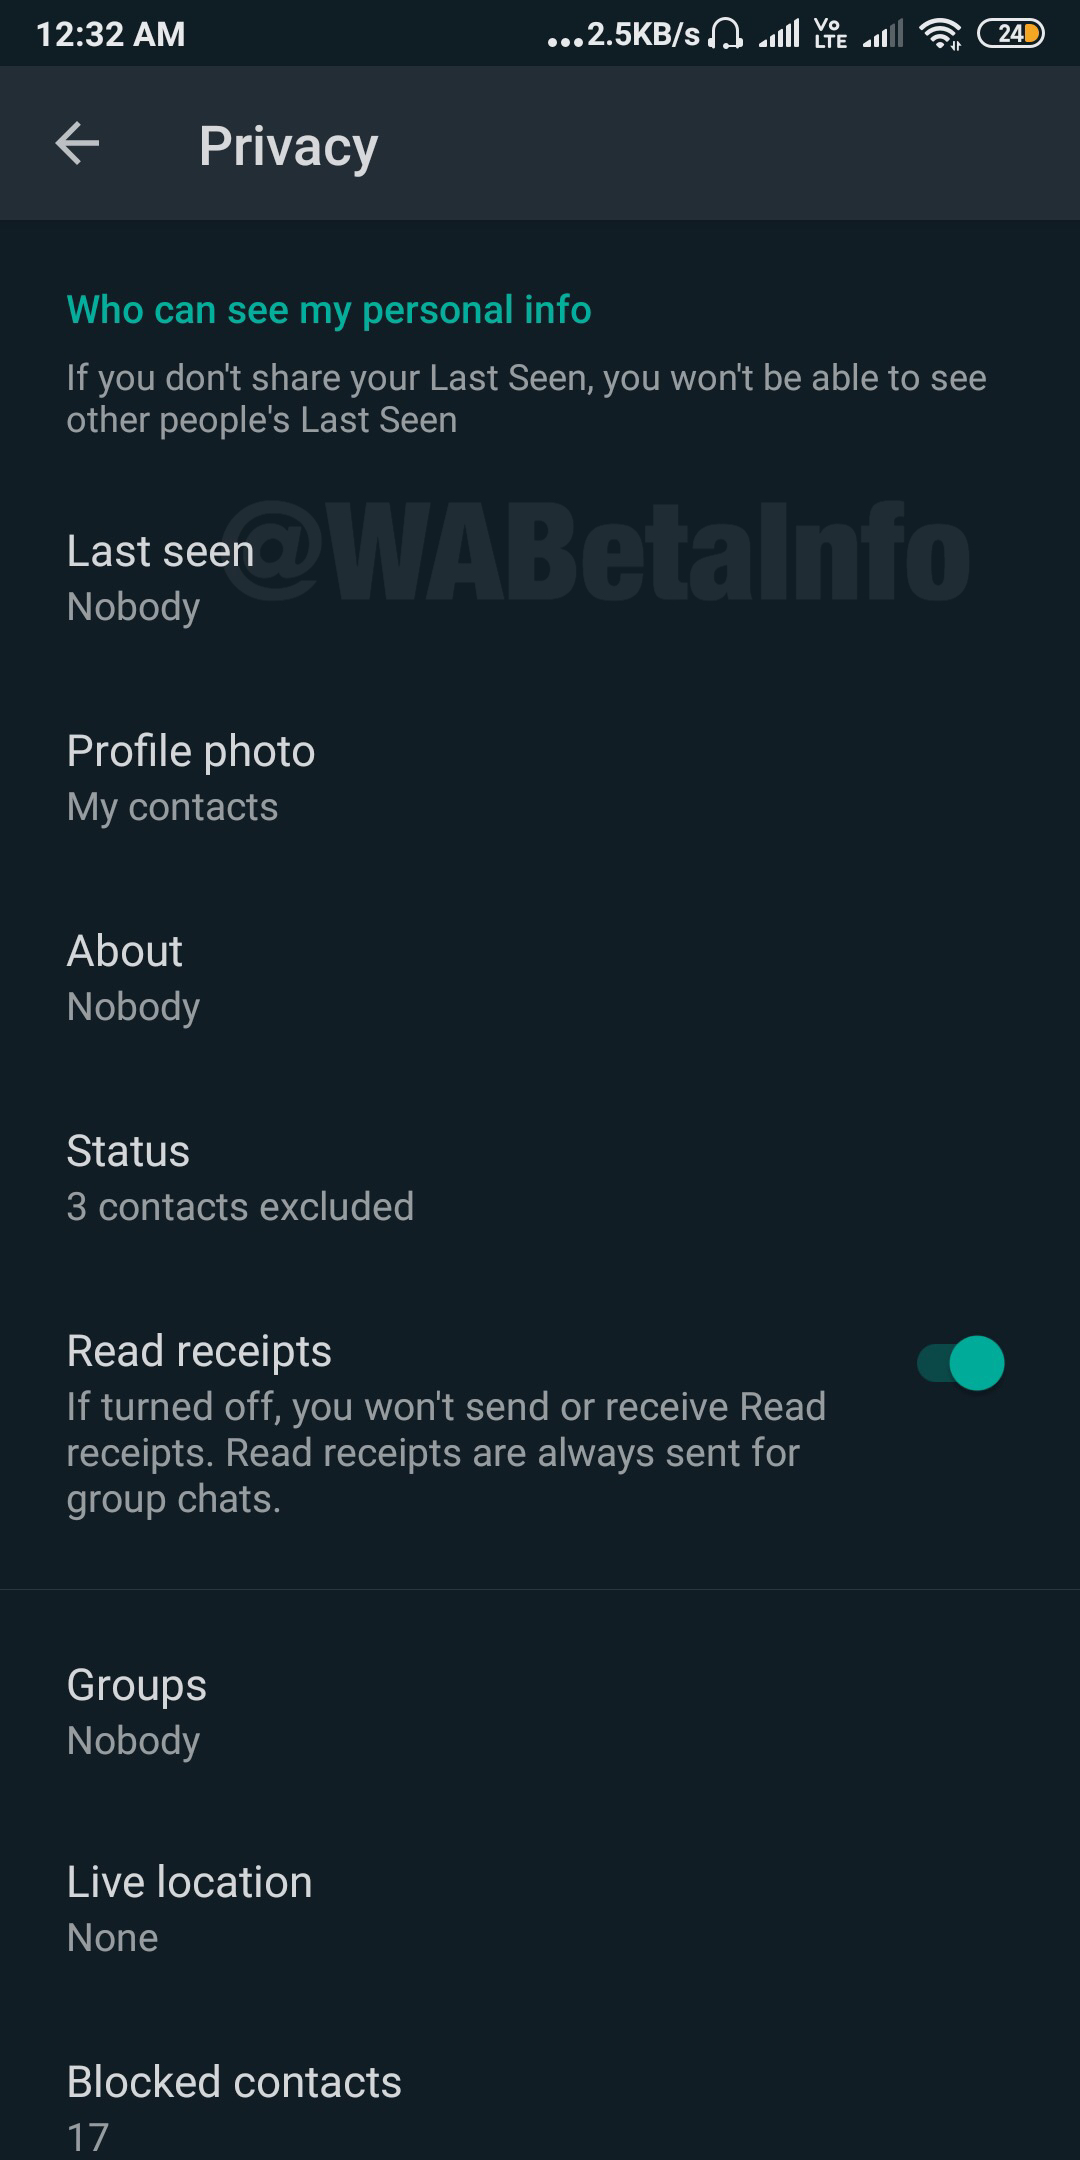 WhatsApp Dark Theme finally available for WhatsApp Beta users on Android 2